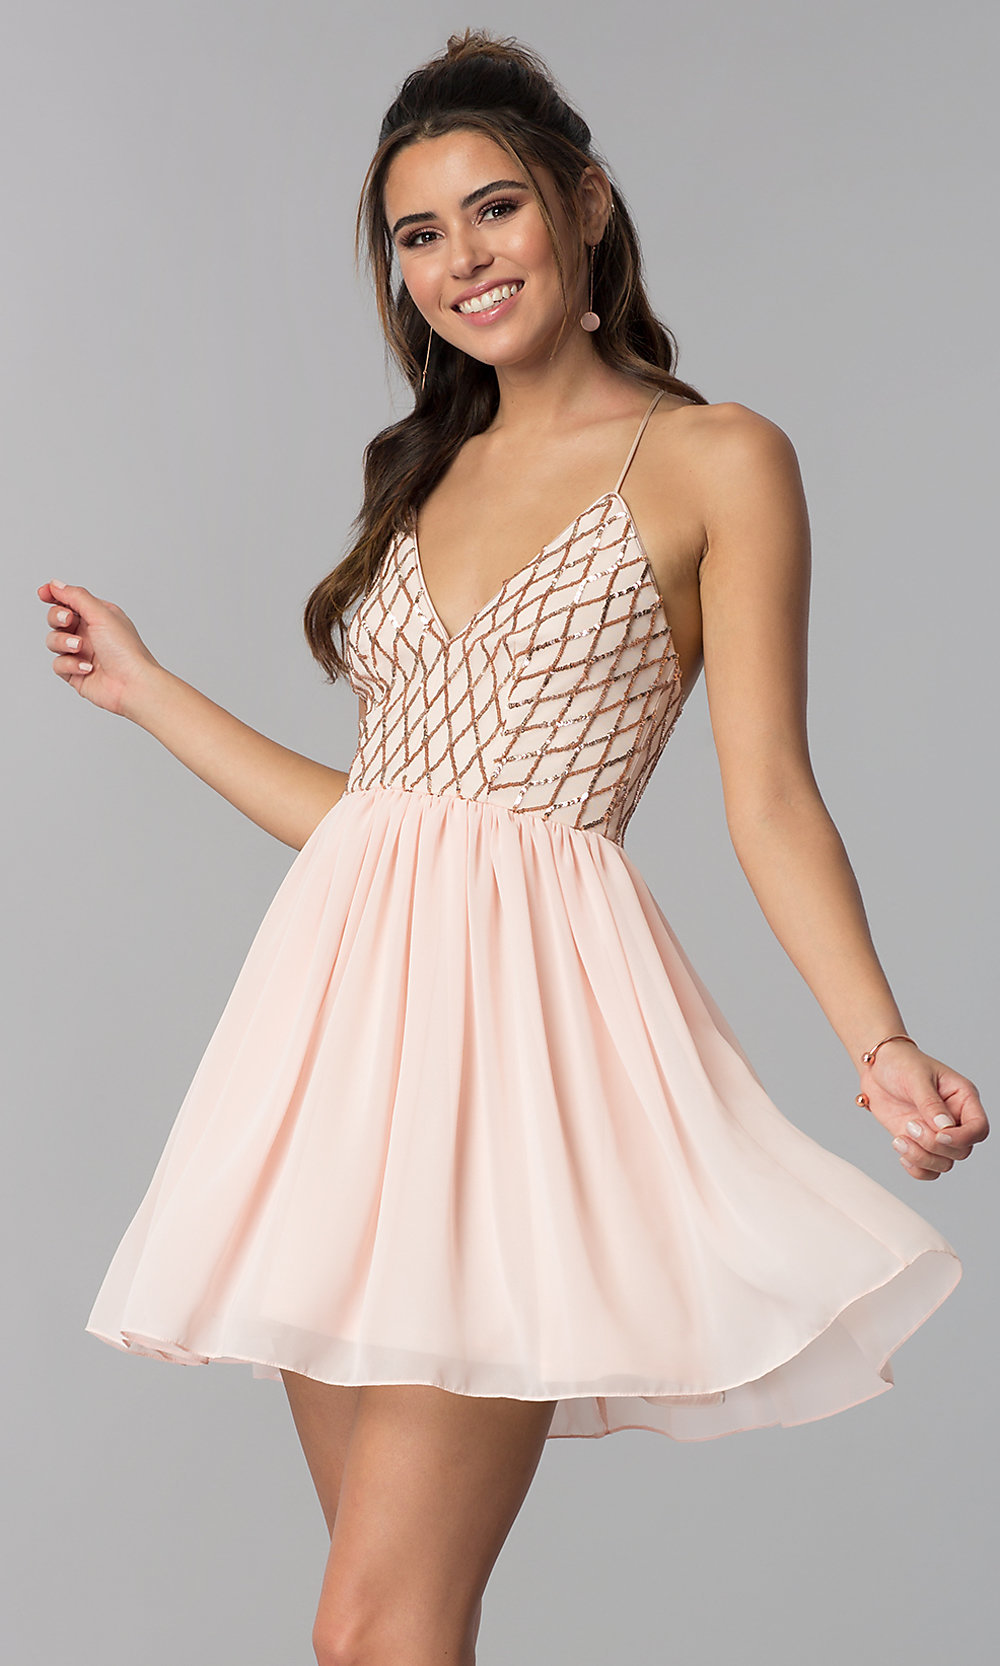 777bc0f8054 Tap to expand · Image of rose gold v-neck short party dress ...